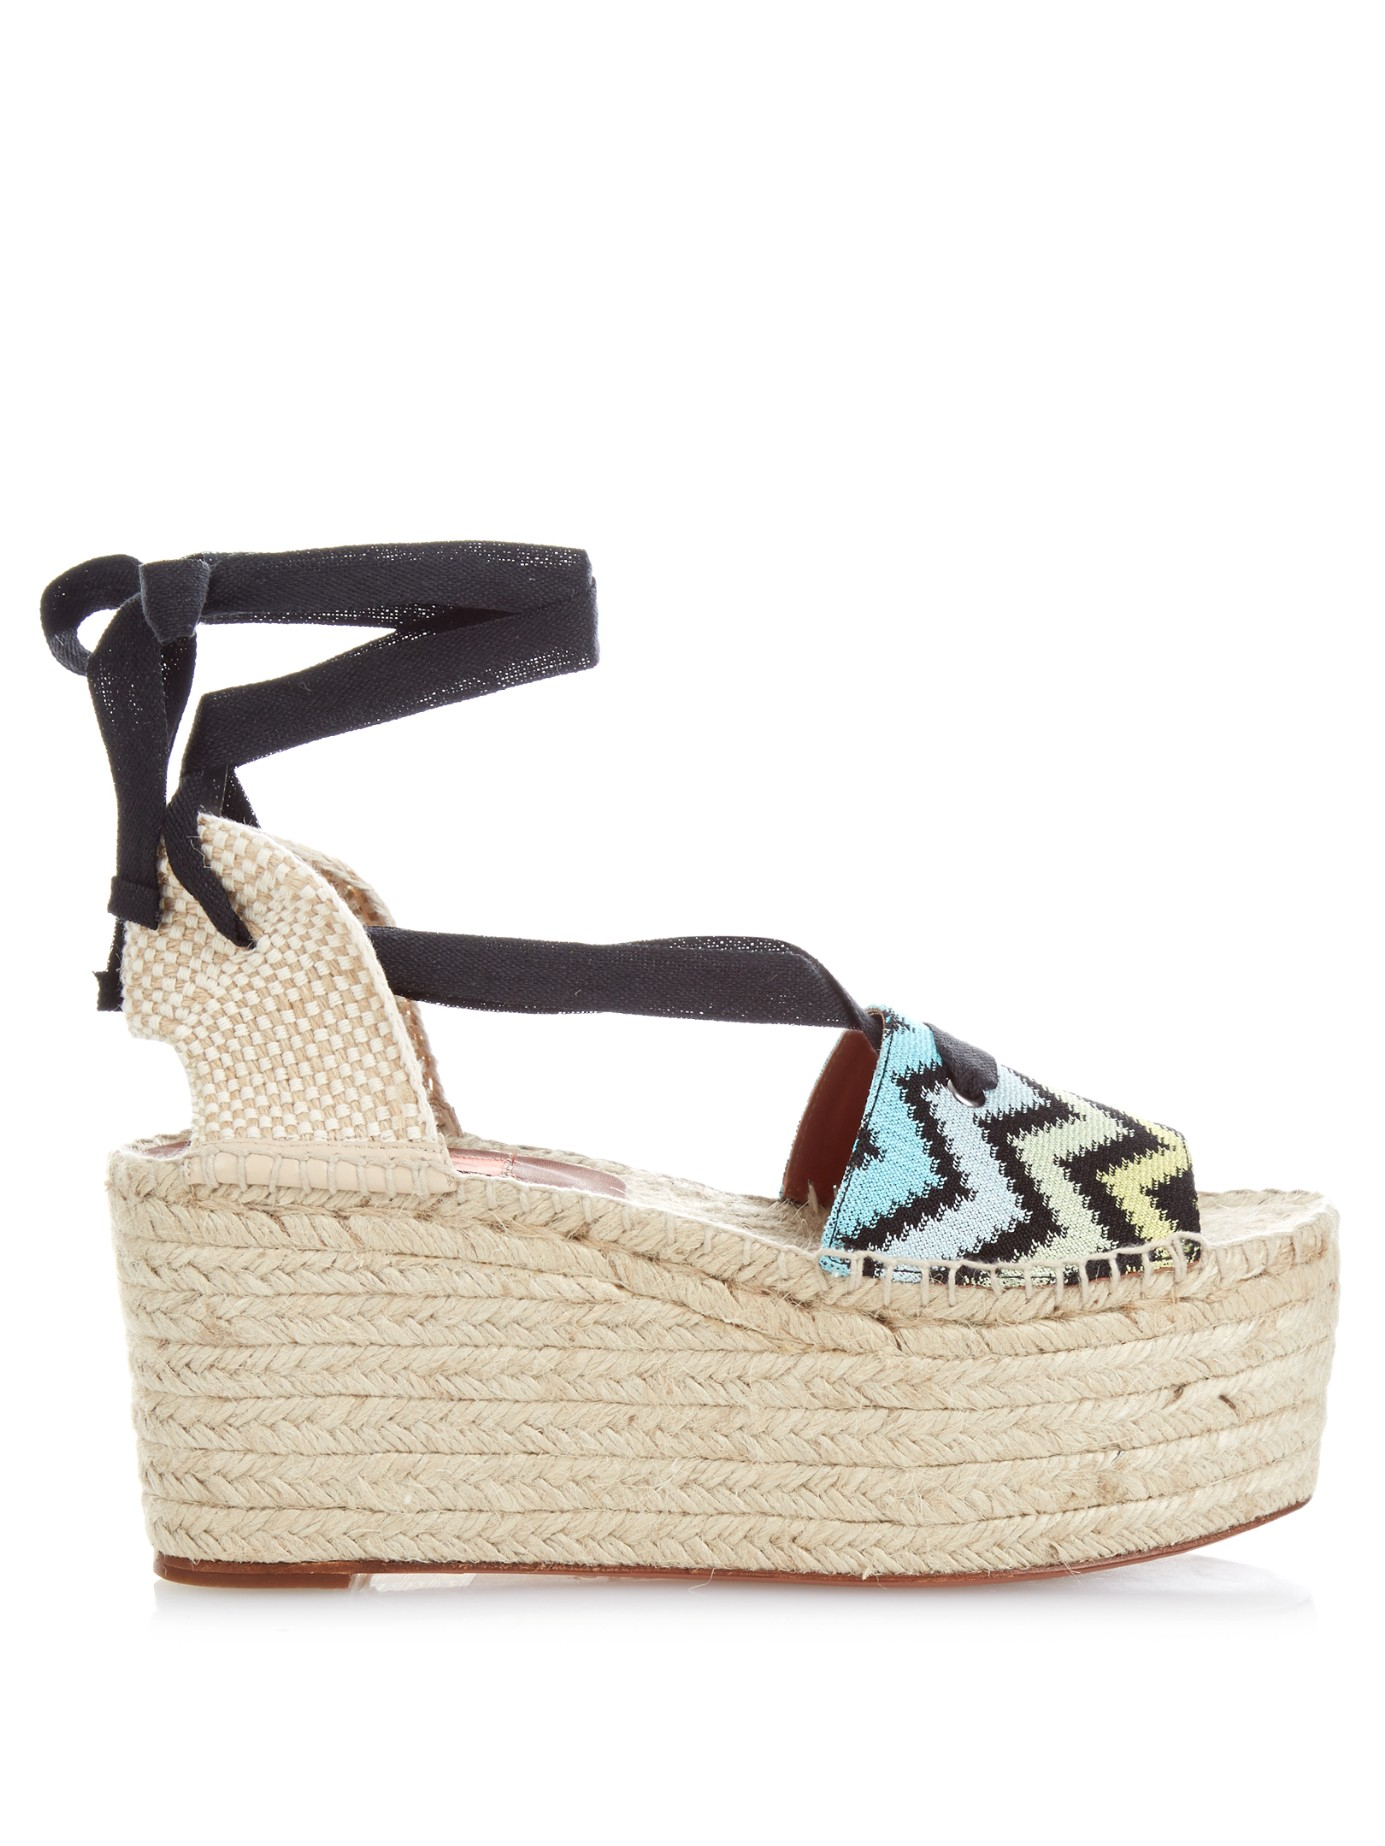 100% original cheap online Missoni Knit Wedge Sandals cheap sale 100% guaranteed cheap sale best place free shipping excellent V7NystRt